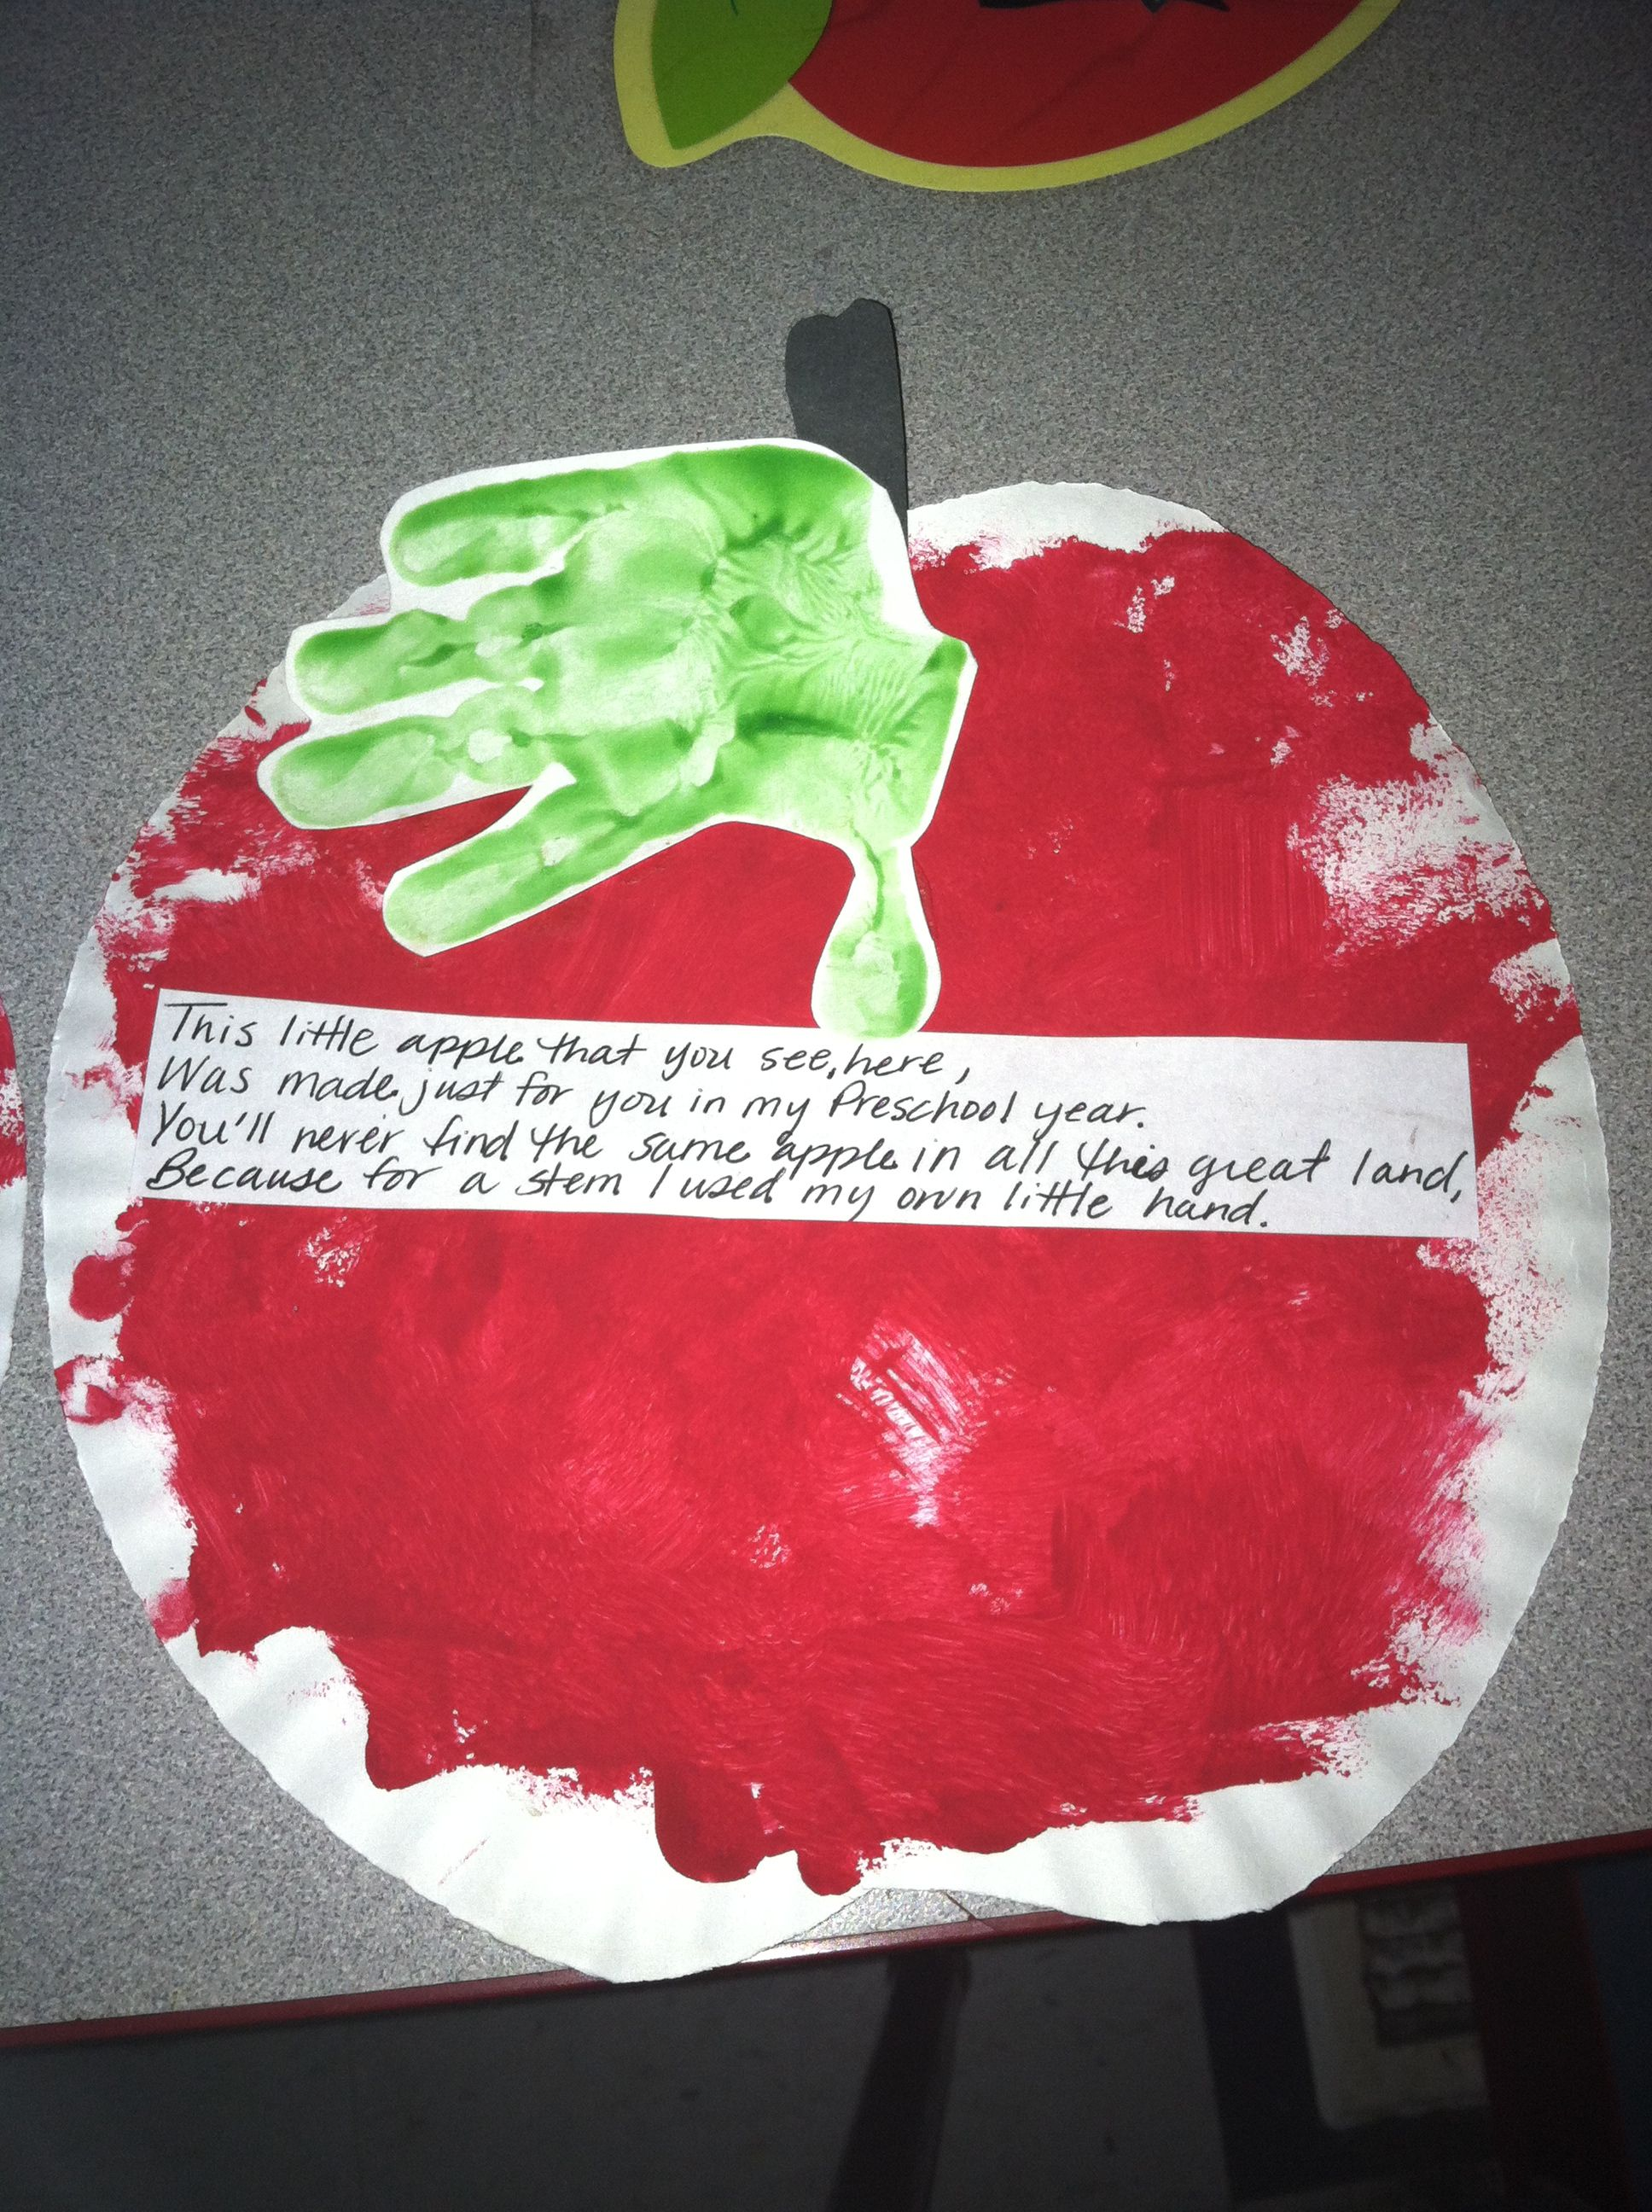 Apple Theme Cutout An Apple Pattern And Let Them Paint It For The Stem I Used Green Paint And